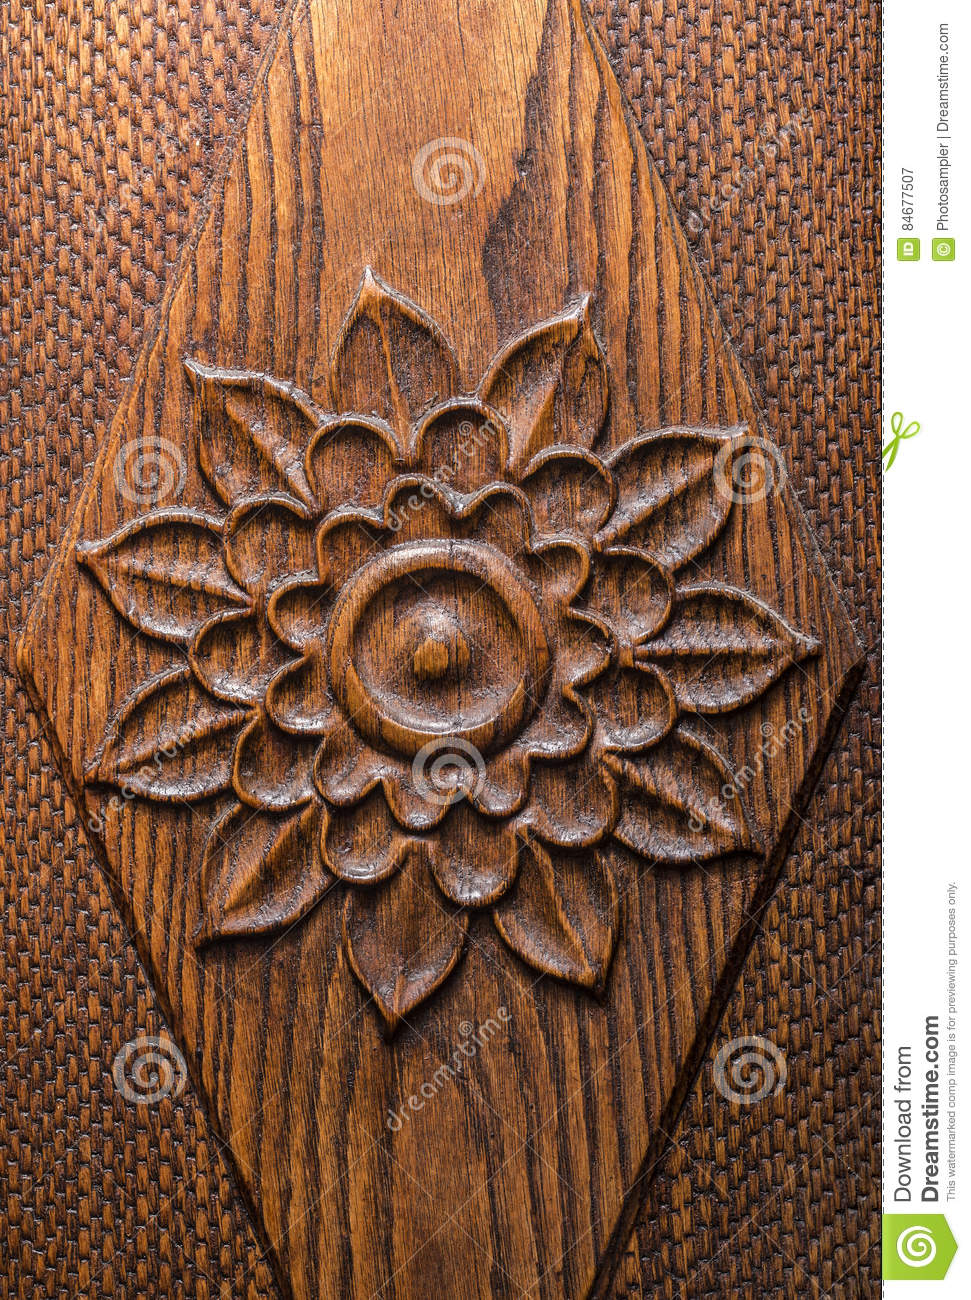 Carved rose detail on a wood stock image image of carve pattern